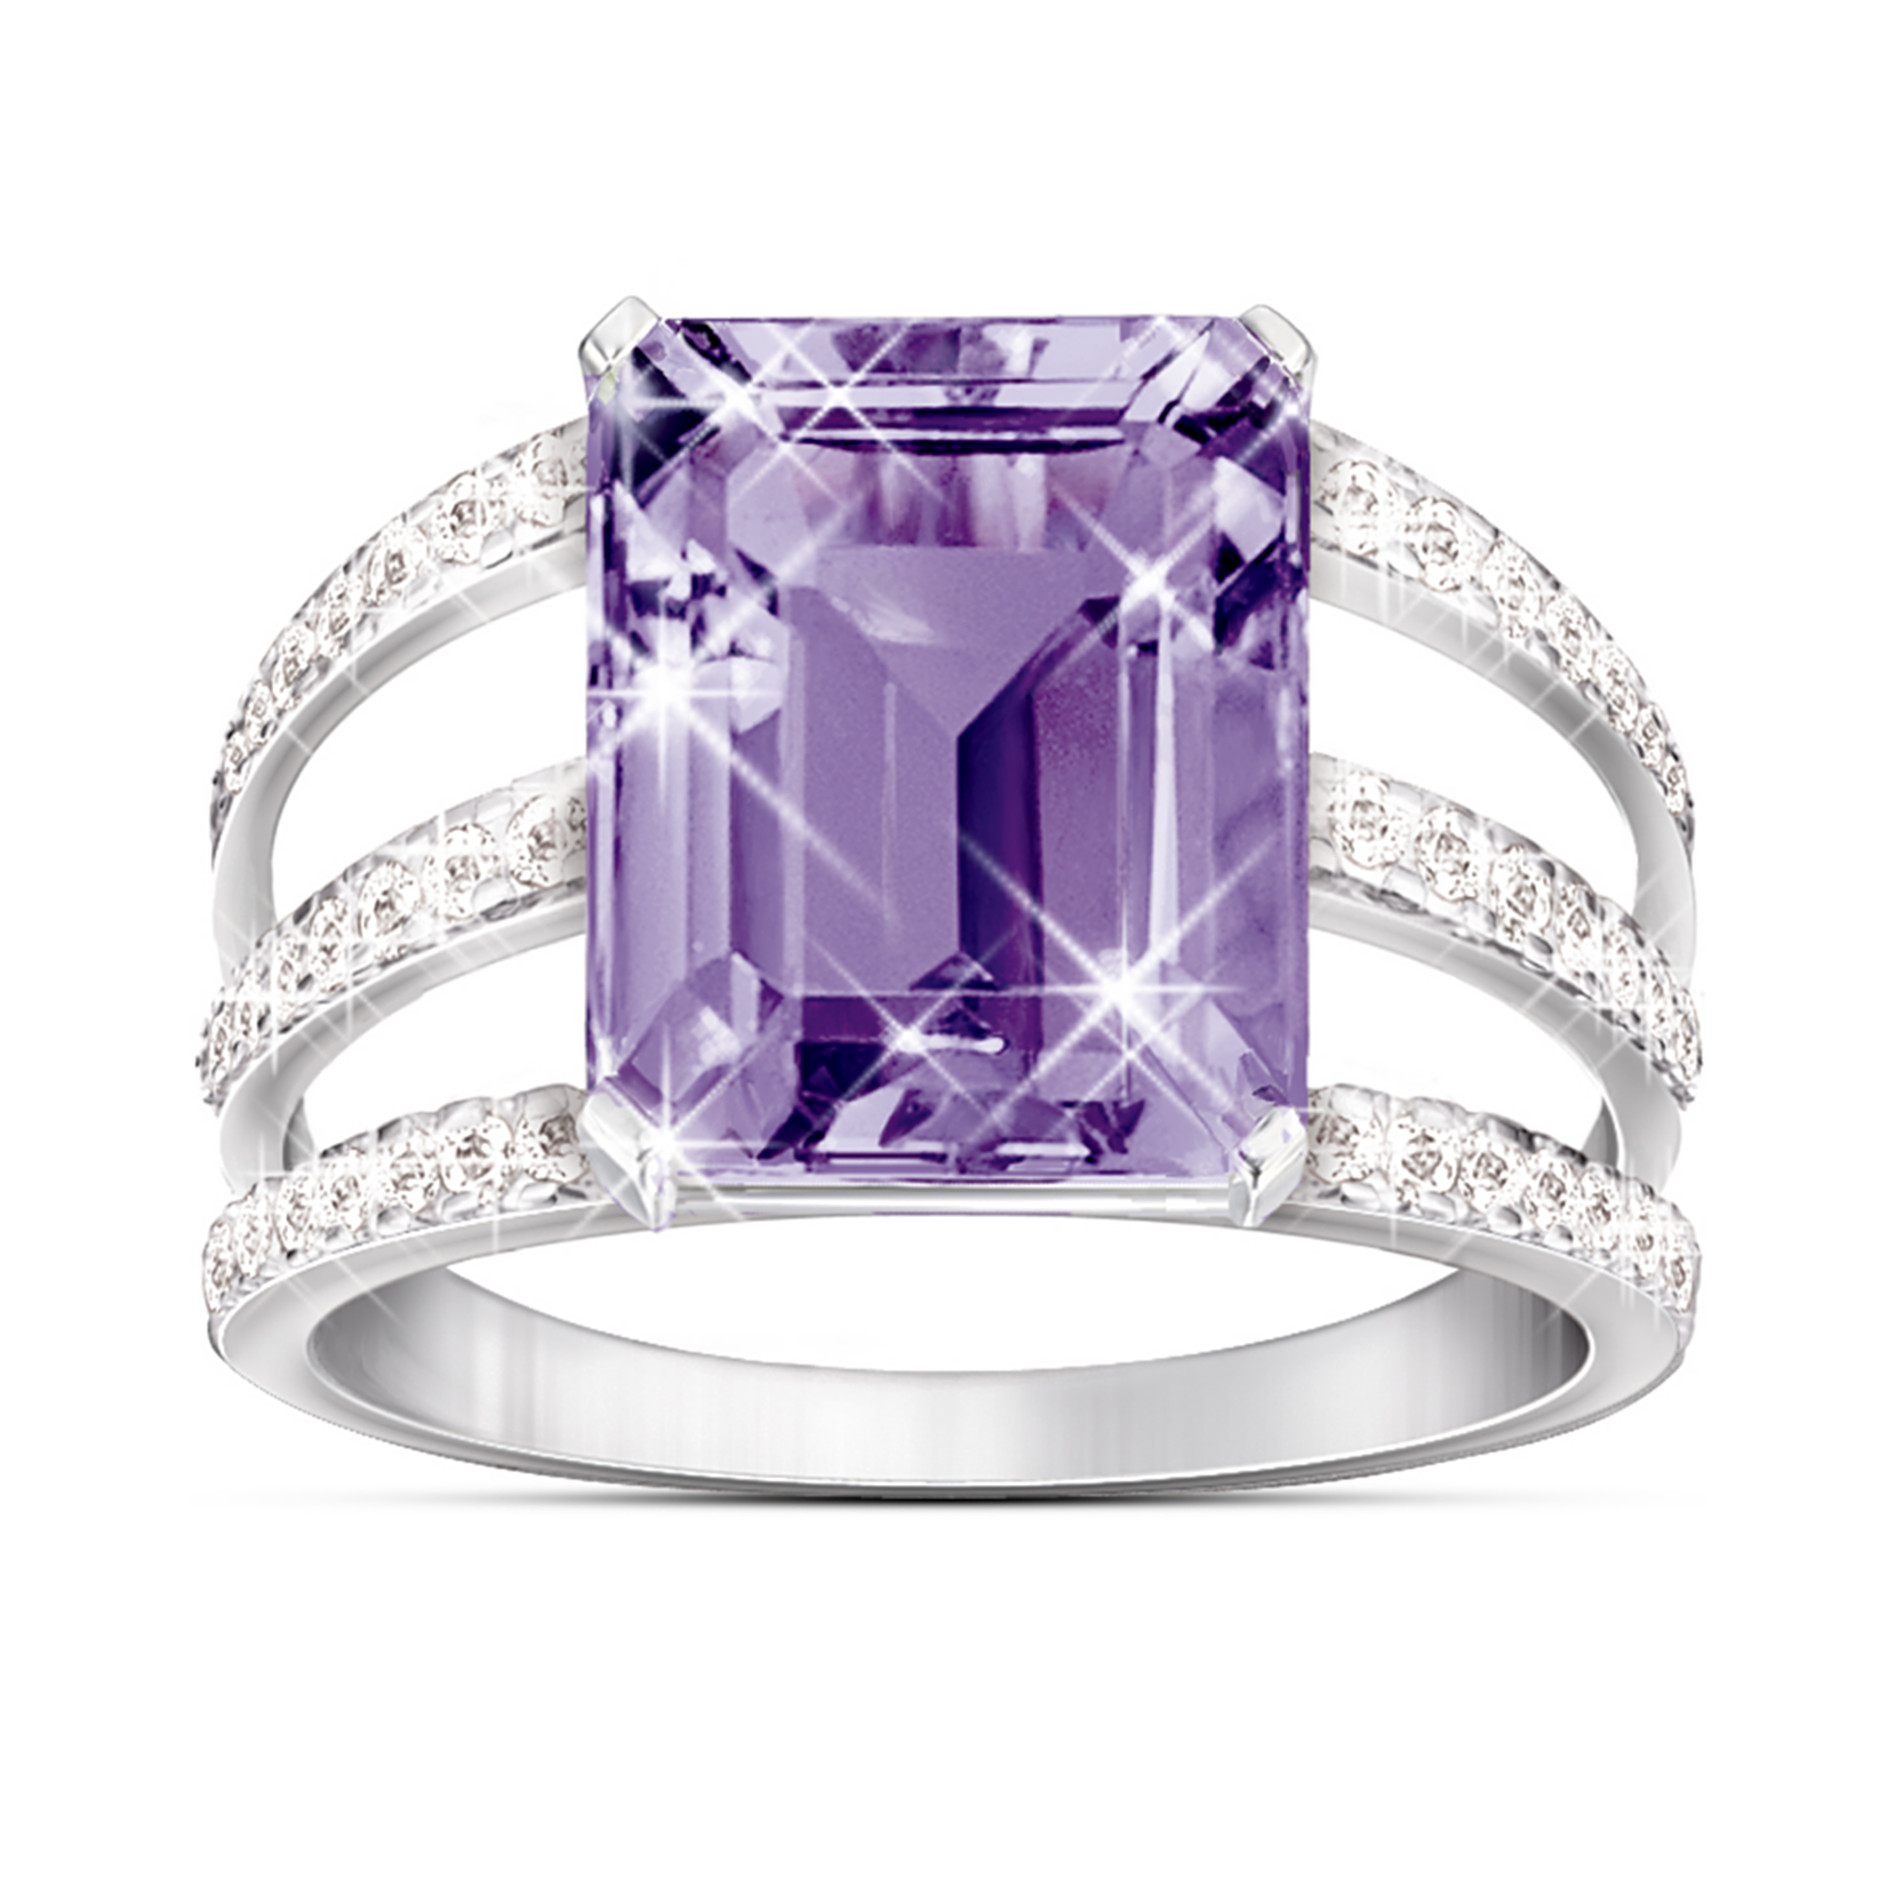 The Bradford Exchange Triple Band Timeless Radiance Purple Amethyst & Diamond Ring With Pave Setting at Sears.com